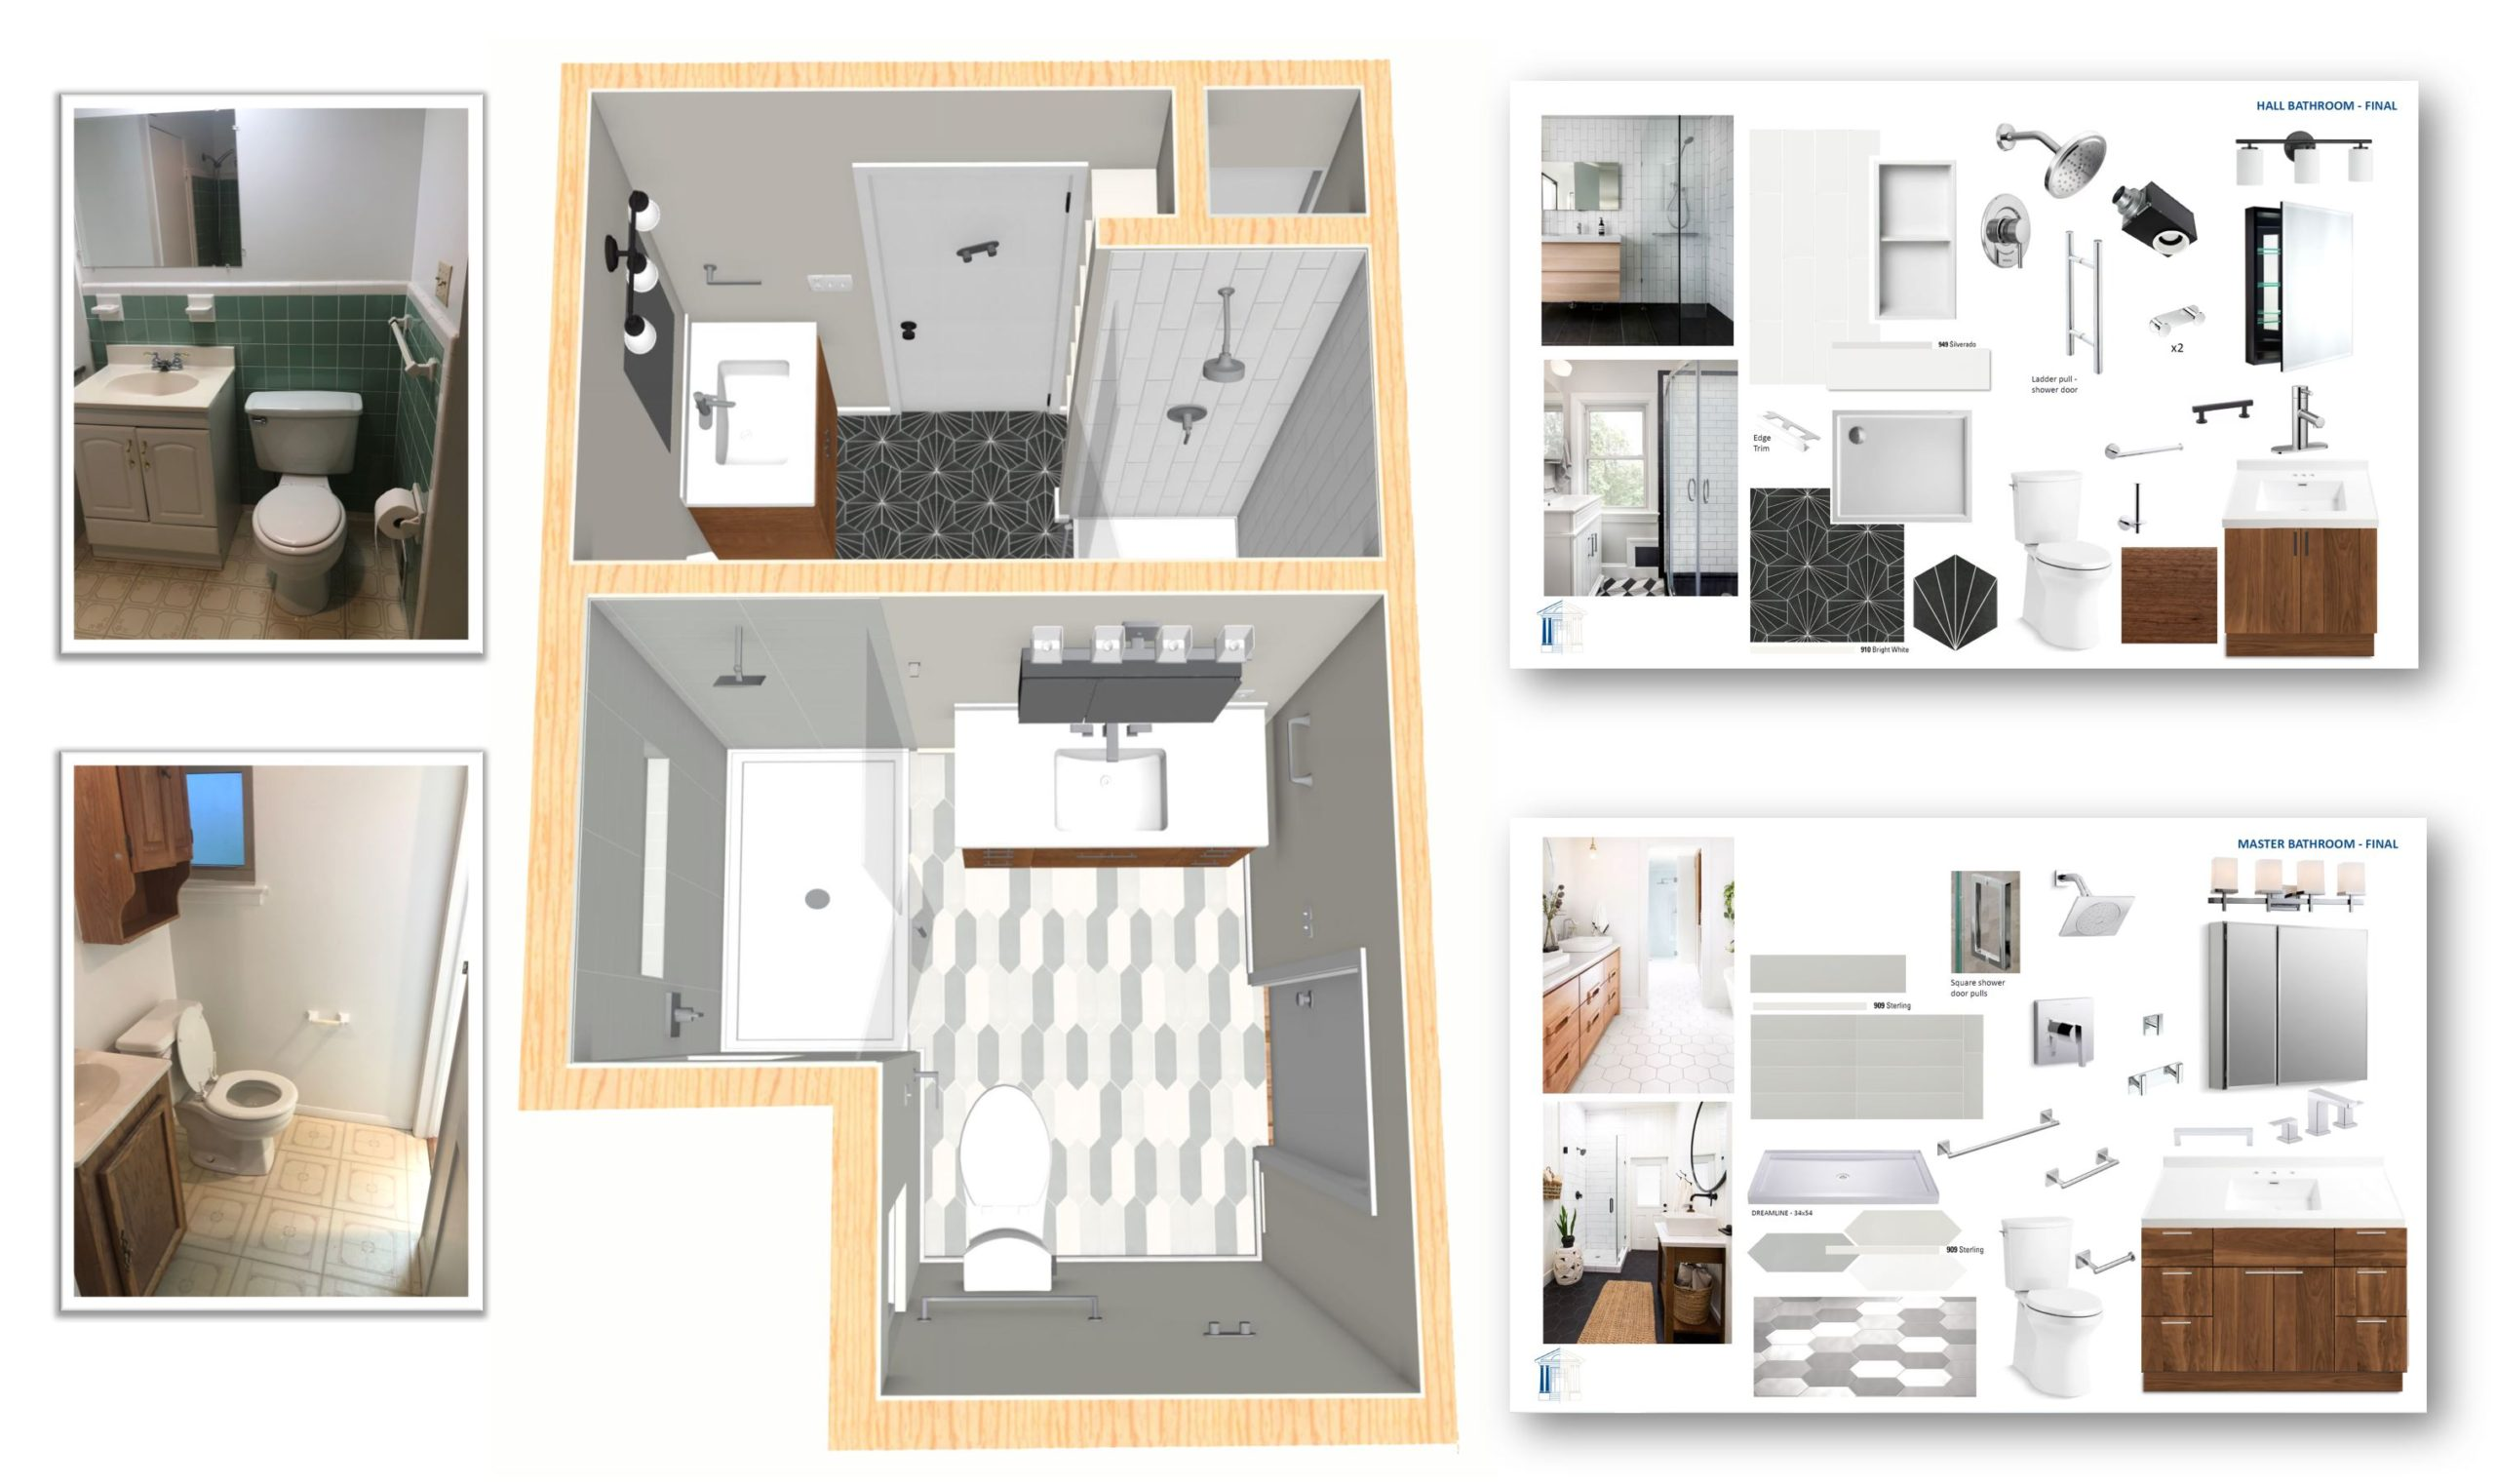 Collage of bathroom before and during remodeling project pieces